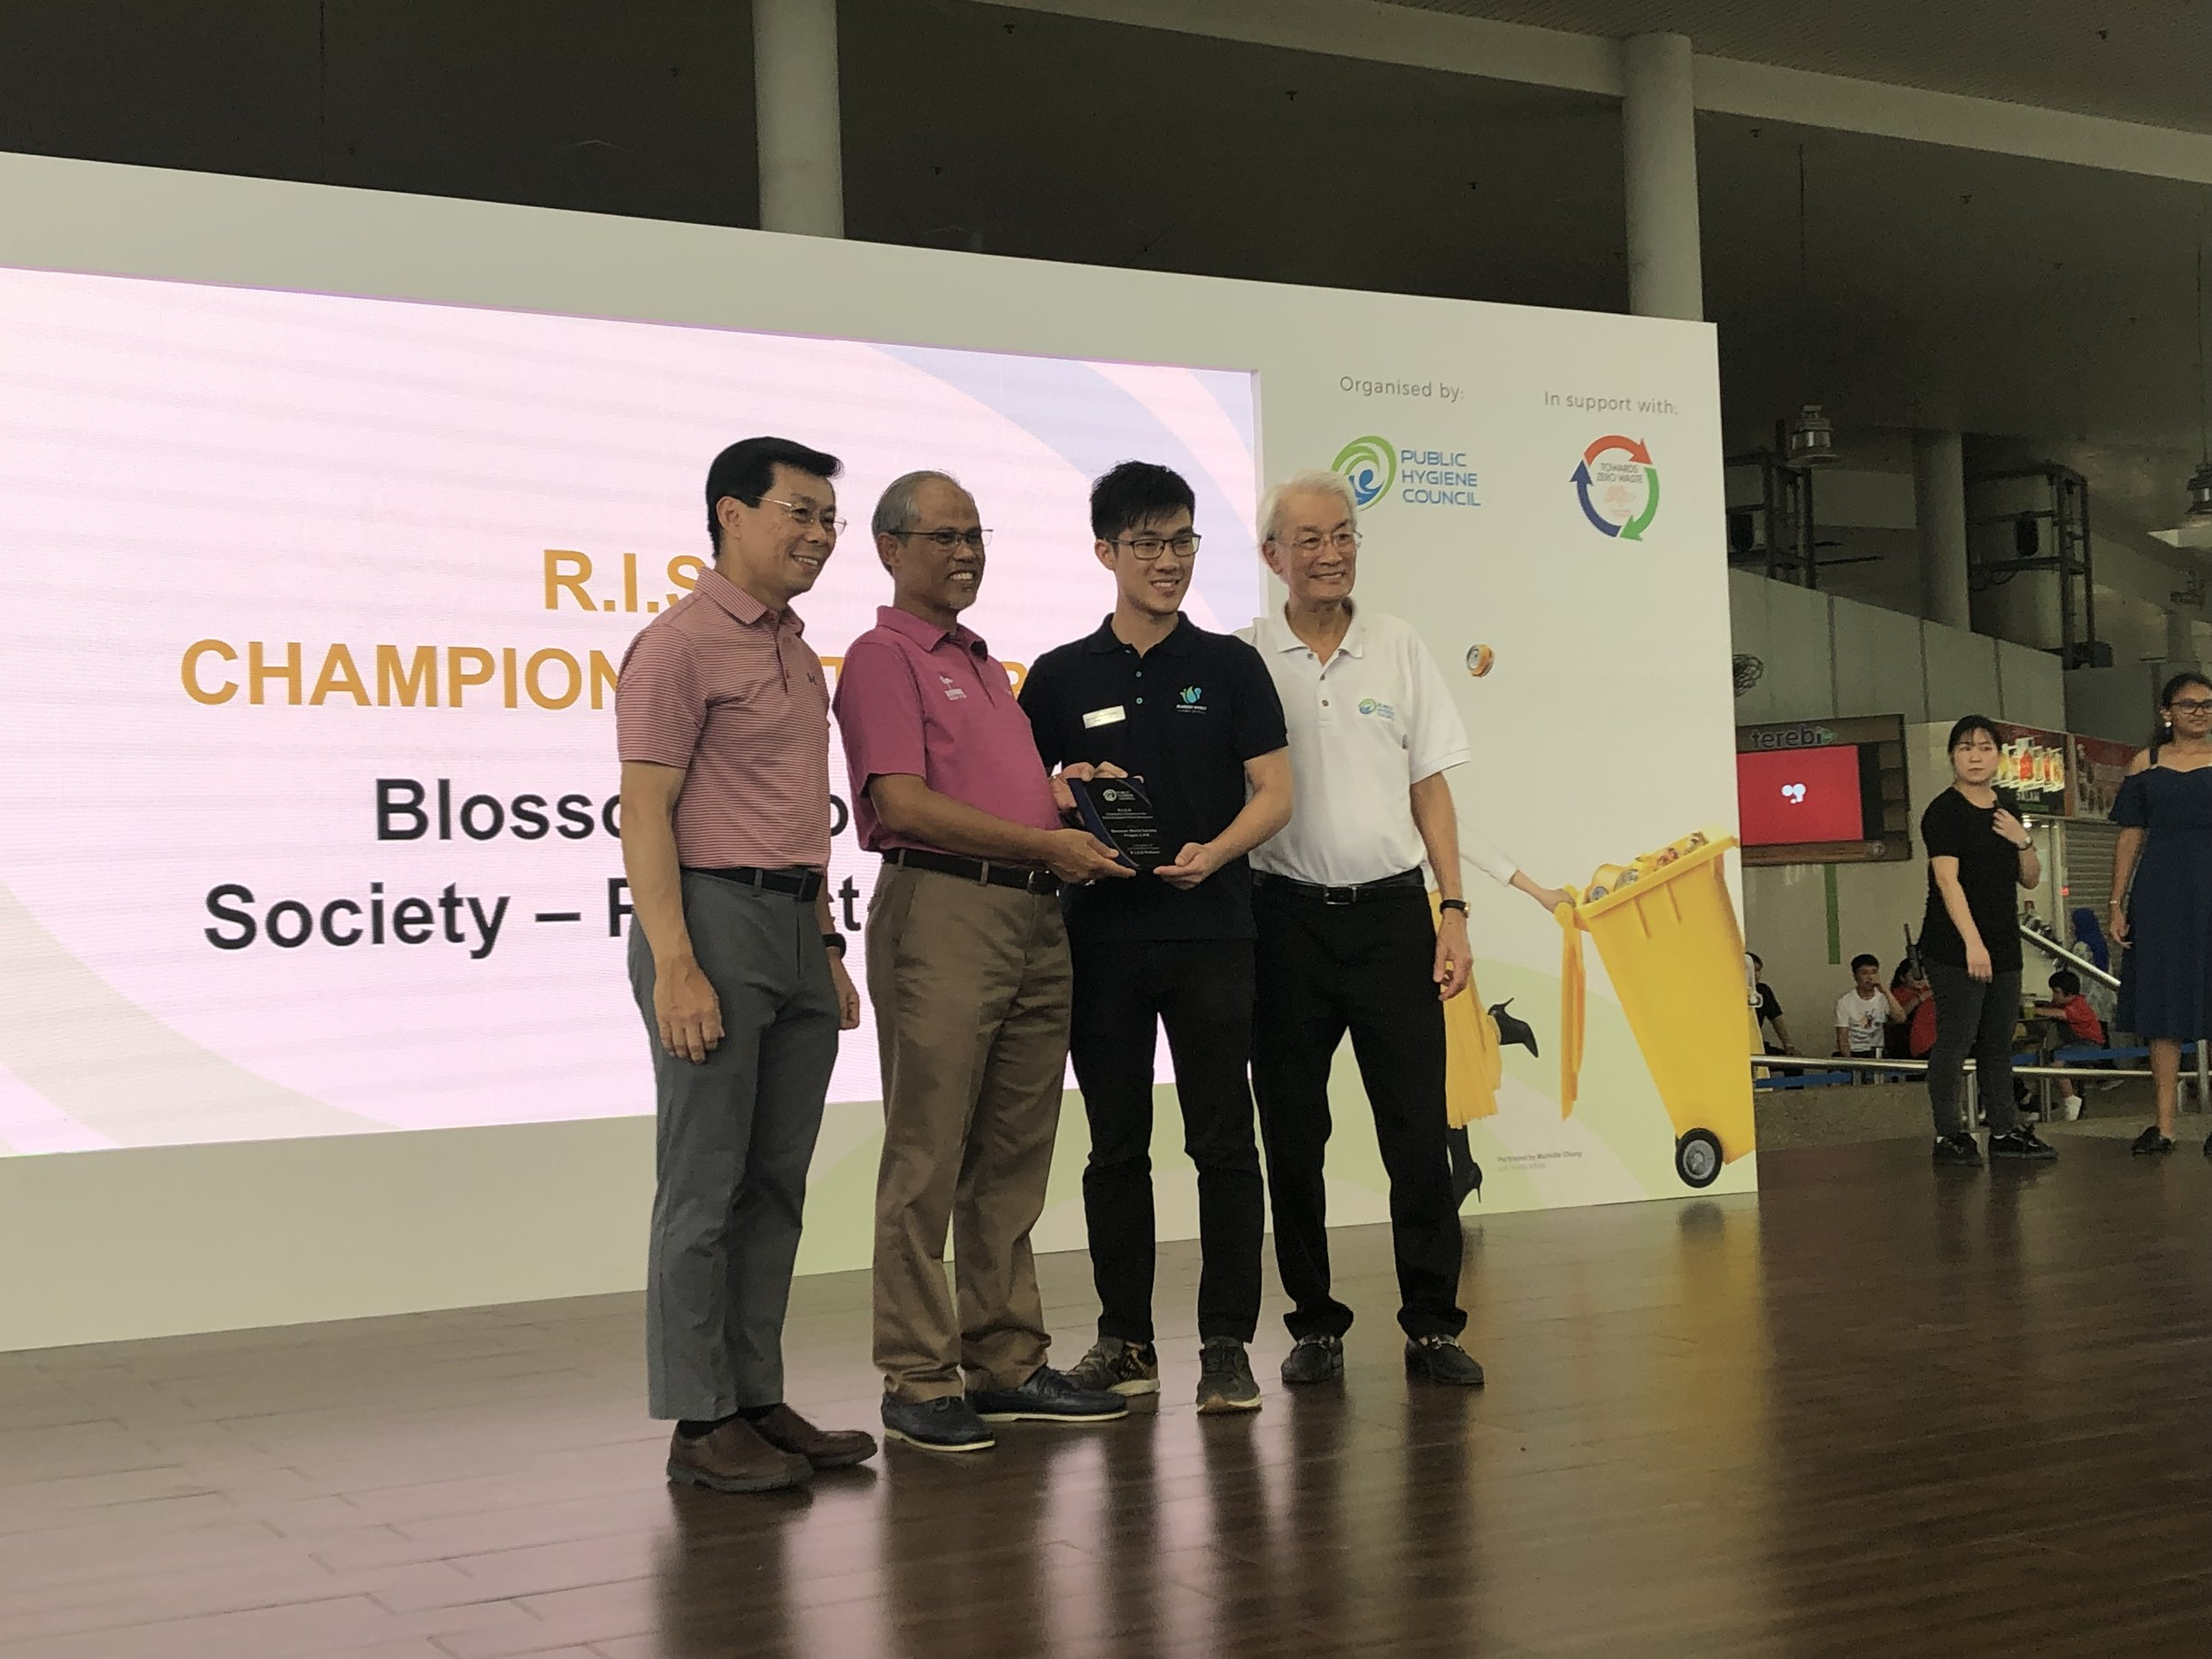 Minister Masagos, Minister for the Environment and Water Resources, graced the event and presented our youth leader, Jeremy, with a token of appreciation for Project C.P.R.'s efforts in cleaning up the environment.